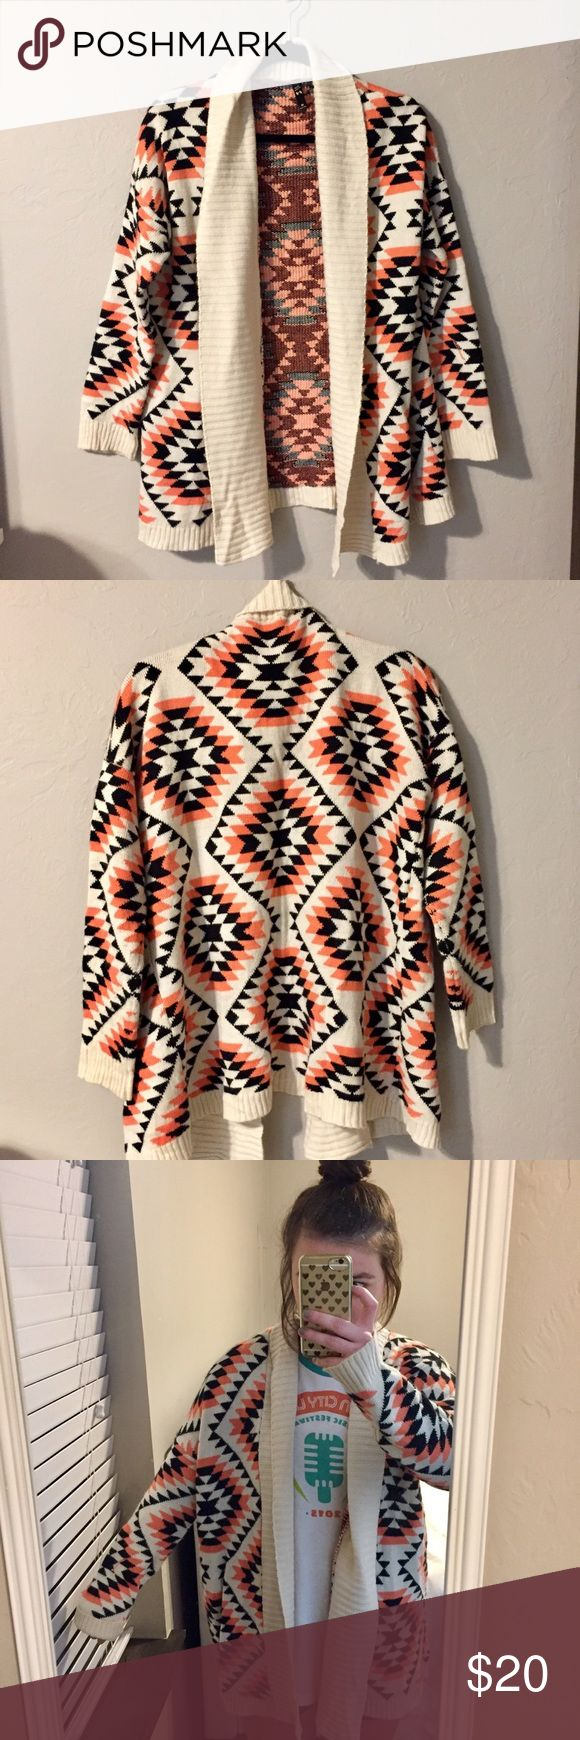 TOBI Tribal Print Sweater Super cute tribal print sweater from TOBI. Comfortable oversized fit. Cream with neon pink and black tribal pattern. Size medium but could fit a range of sizes. Make me an offer! Tobi Sweaters Cardigans